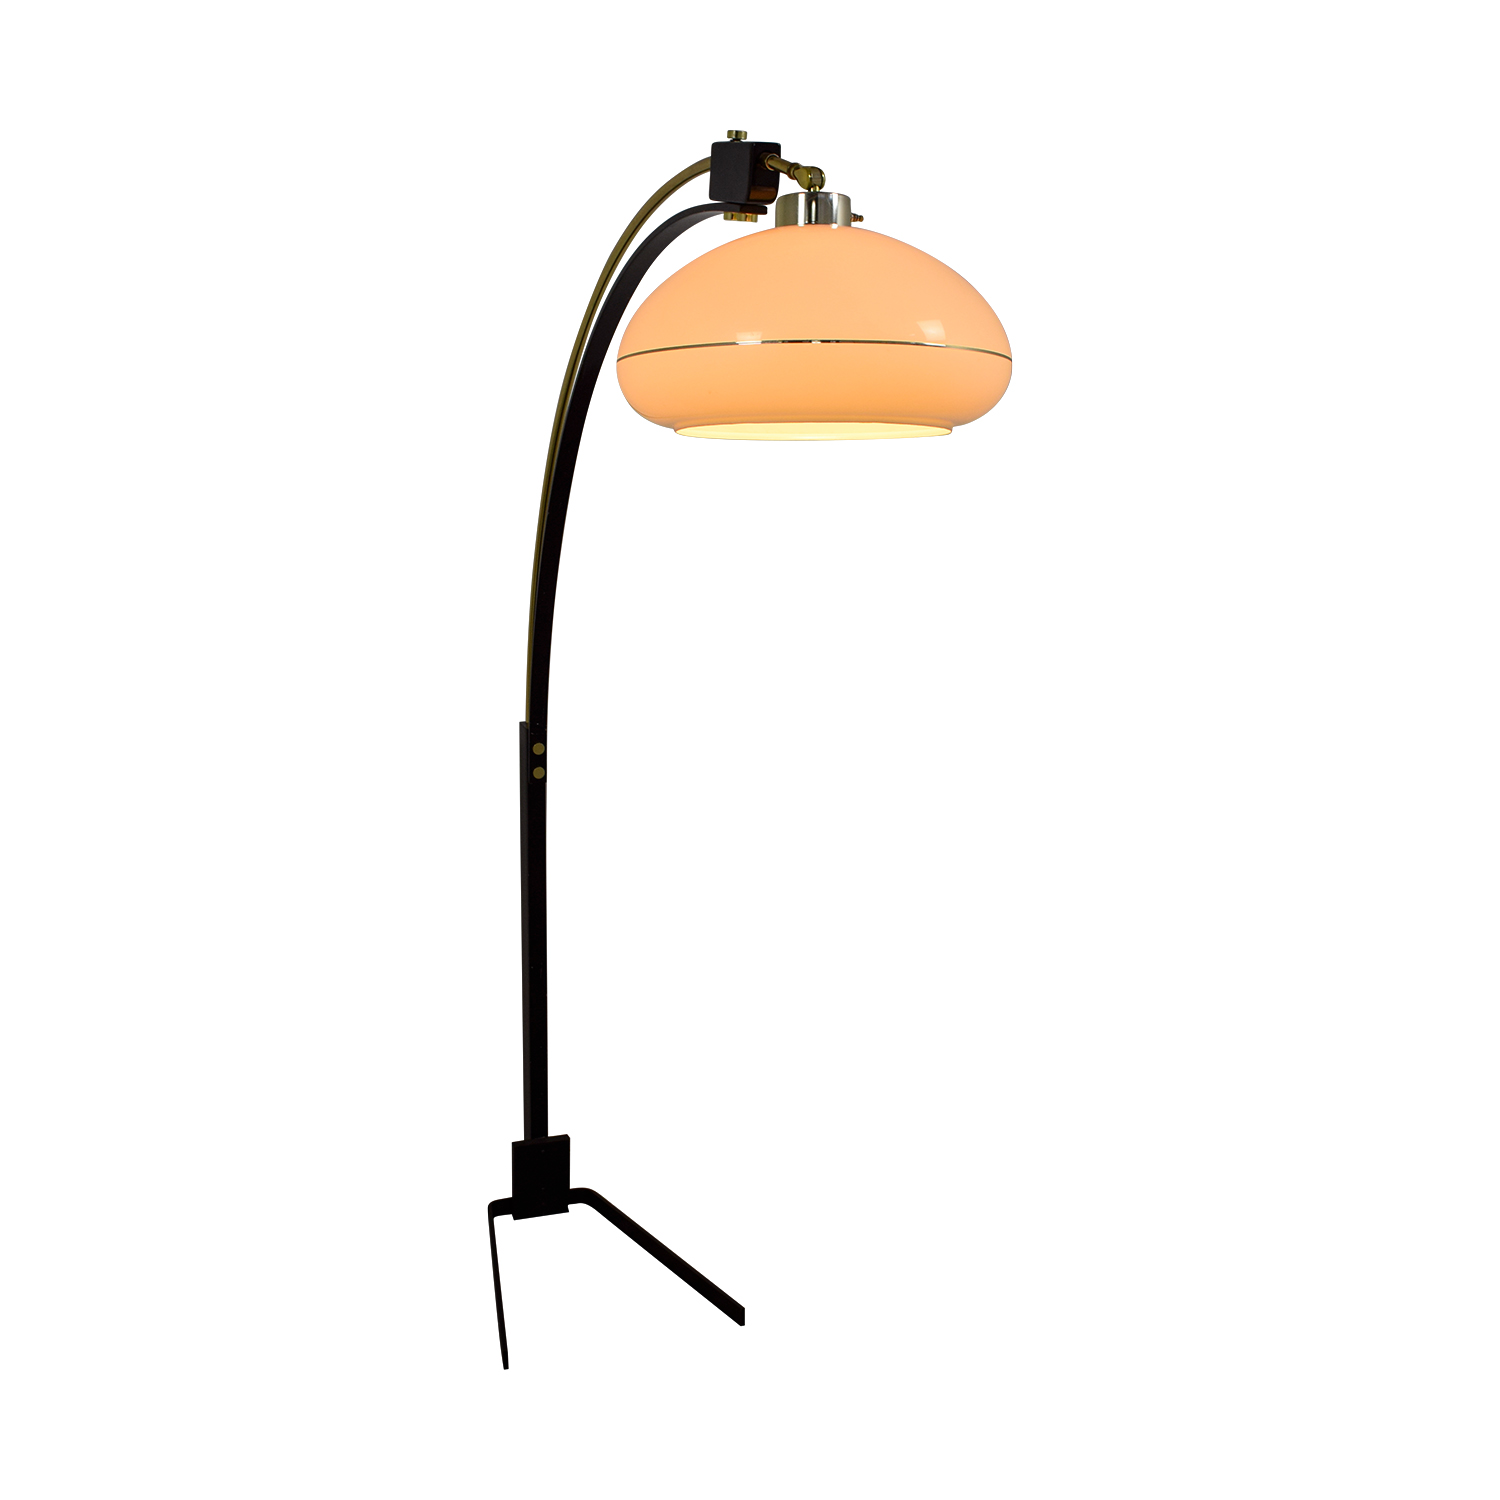 Mid-Century Arched Floor Lamp Decor